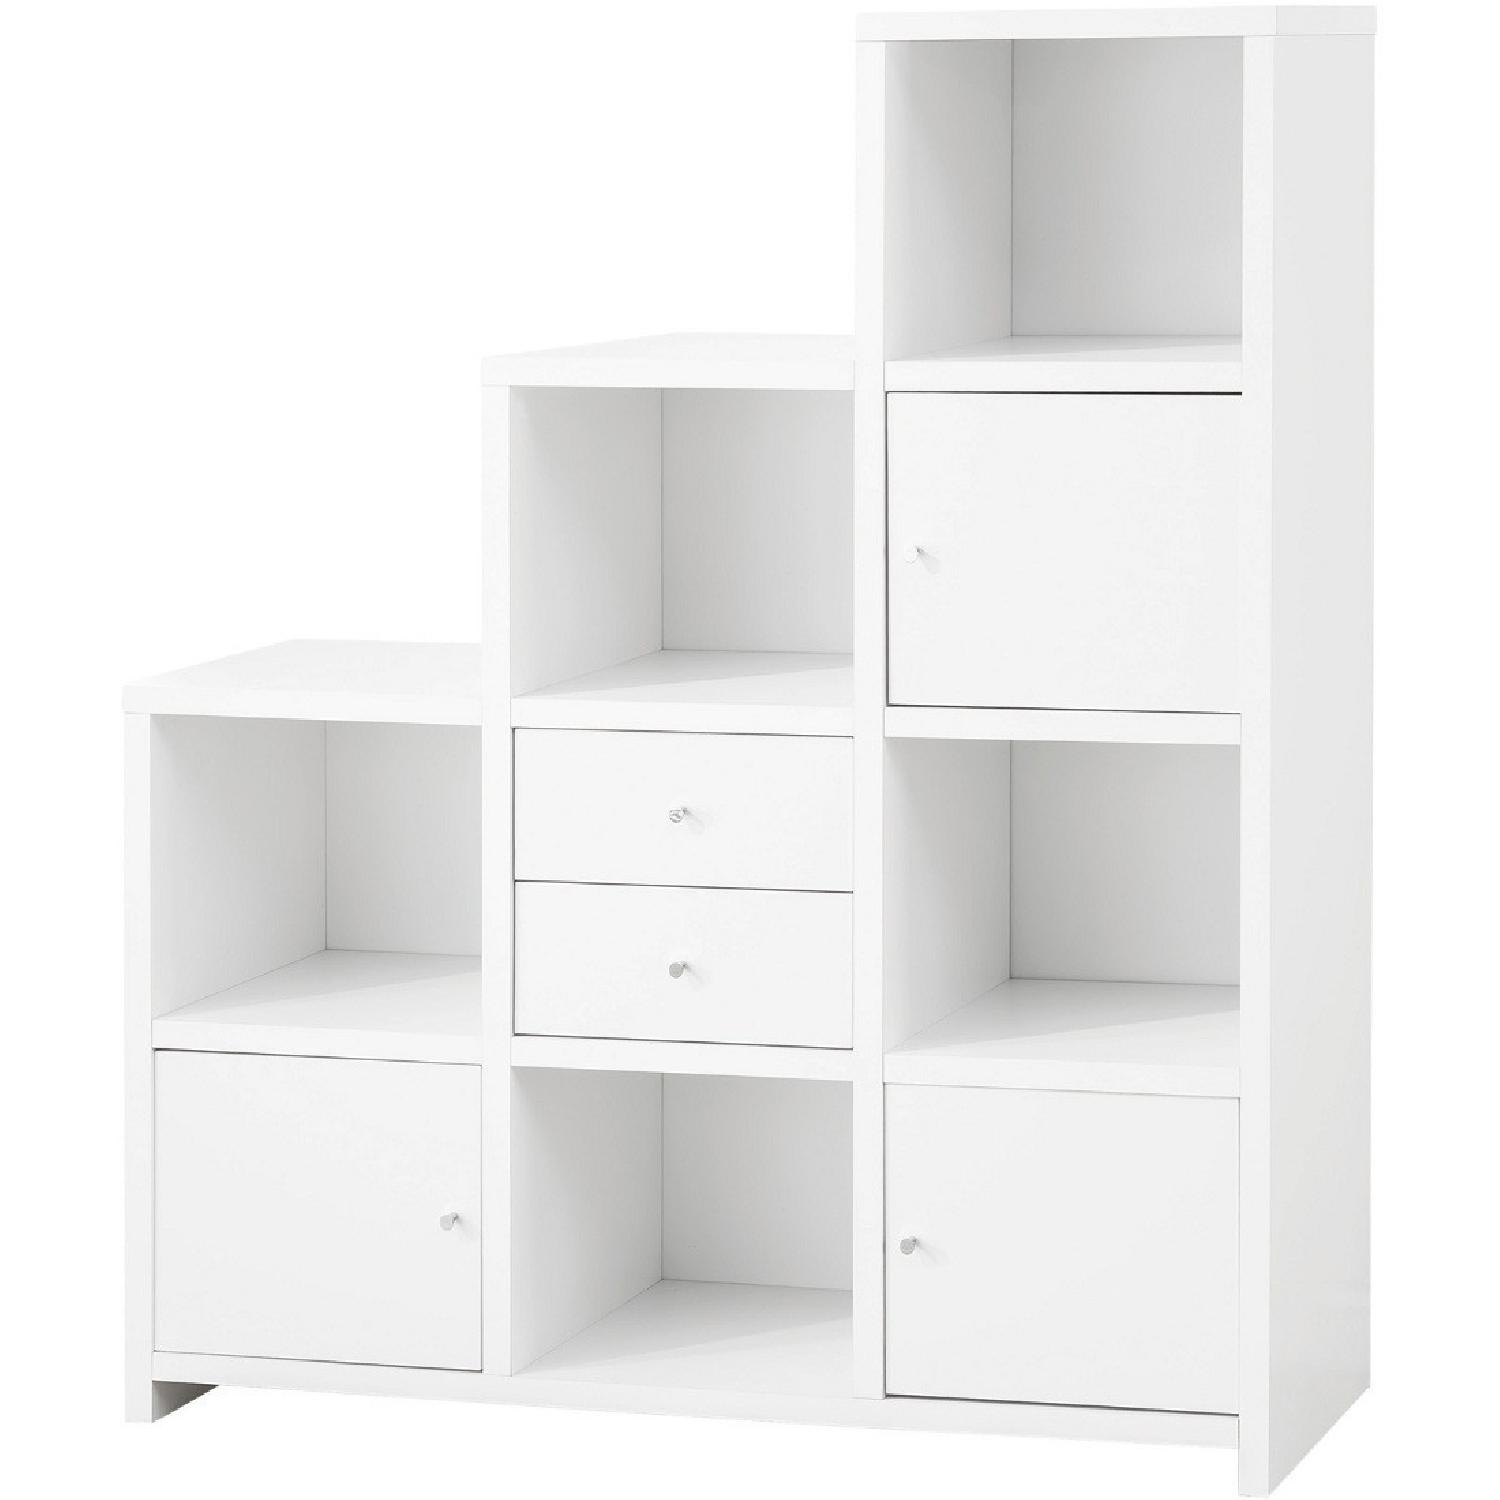 Bookshelf With Cube Storage Compartments in White Color